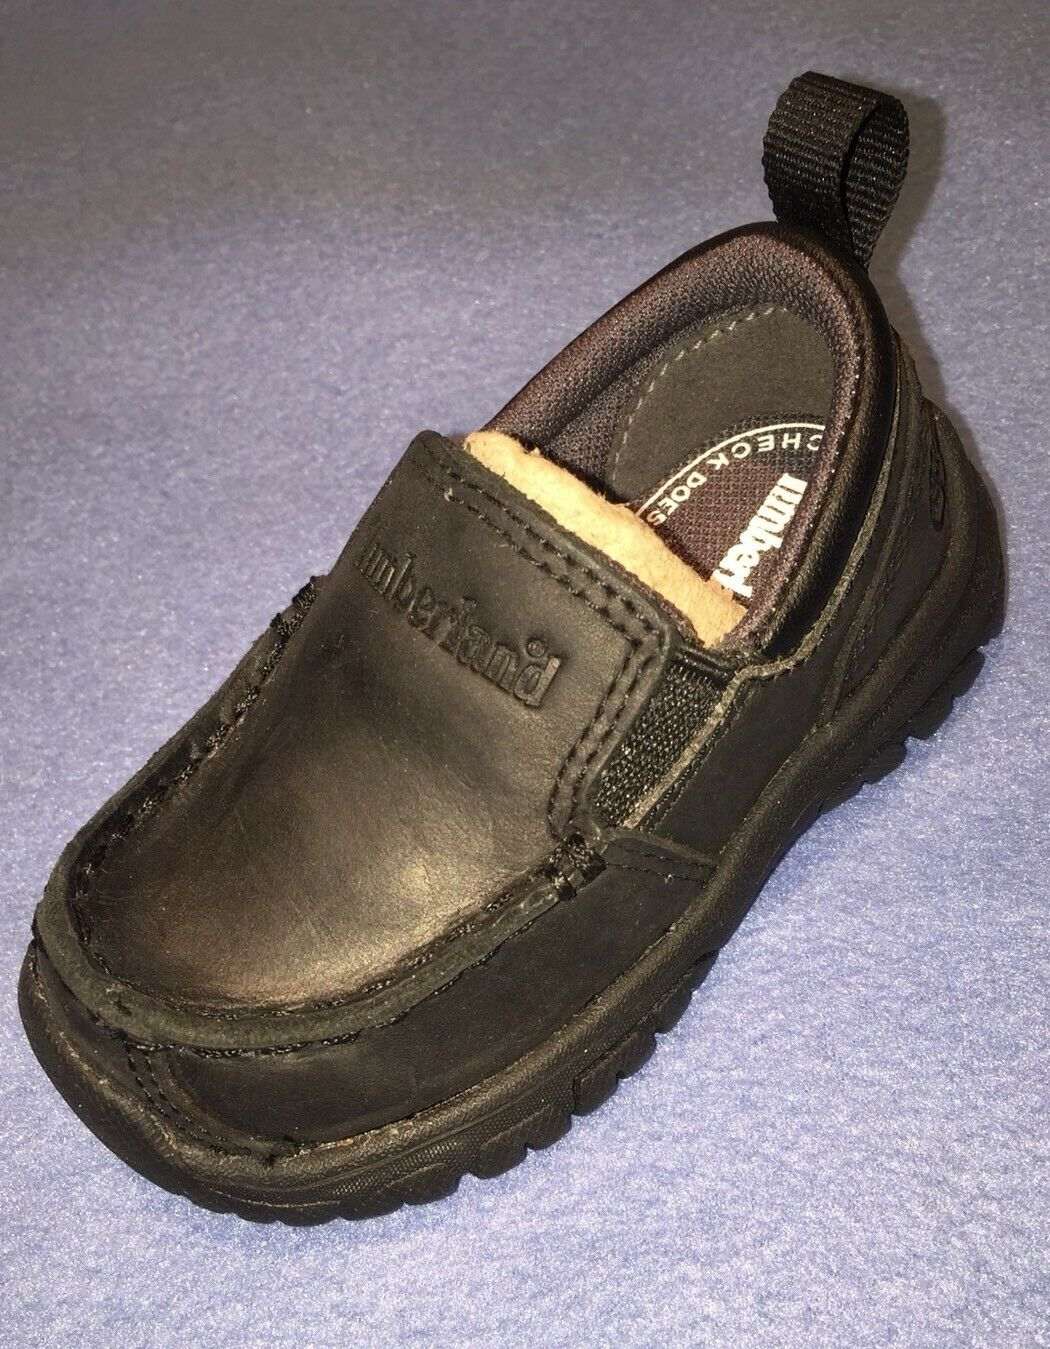 New Timberland Toddler Discovery Pass Boys Black Leather Loafers sz 4 US/ 20 EU 1